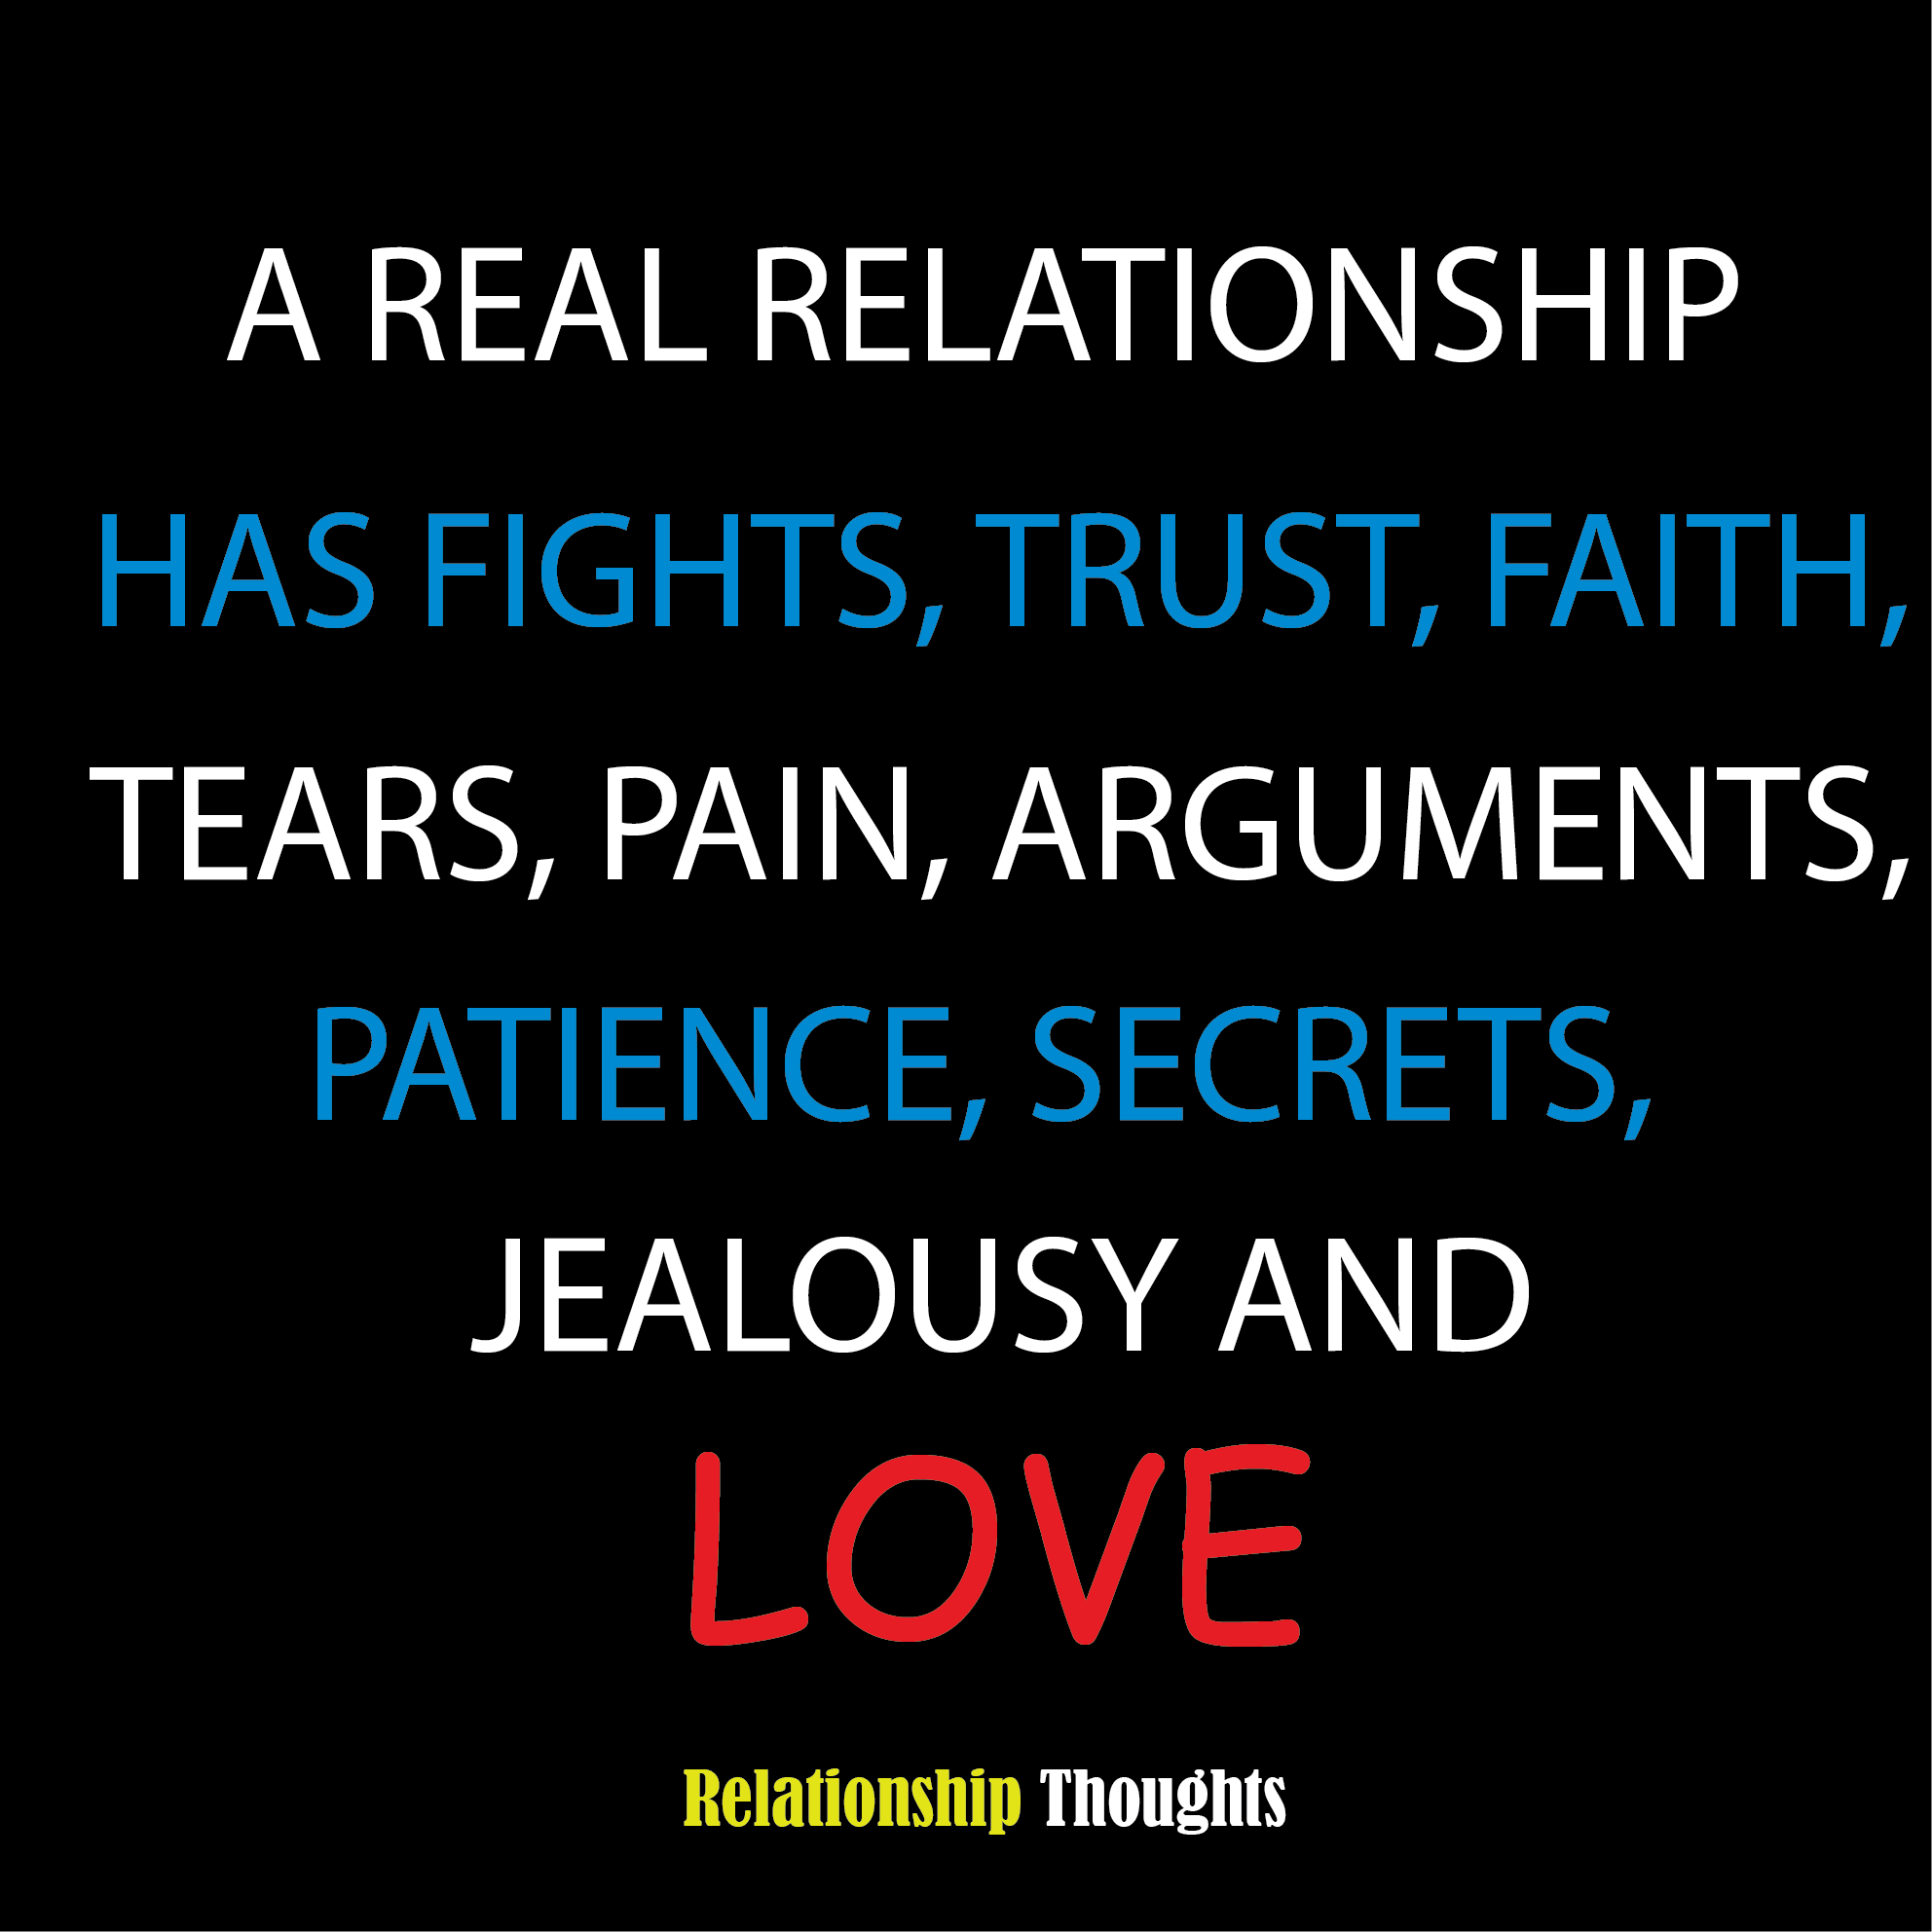 Love relationship thoughts